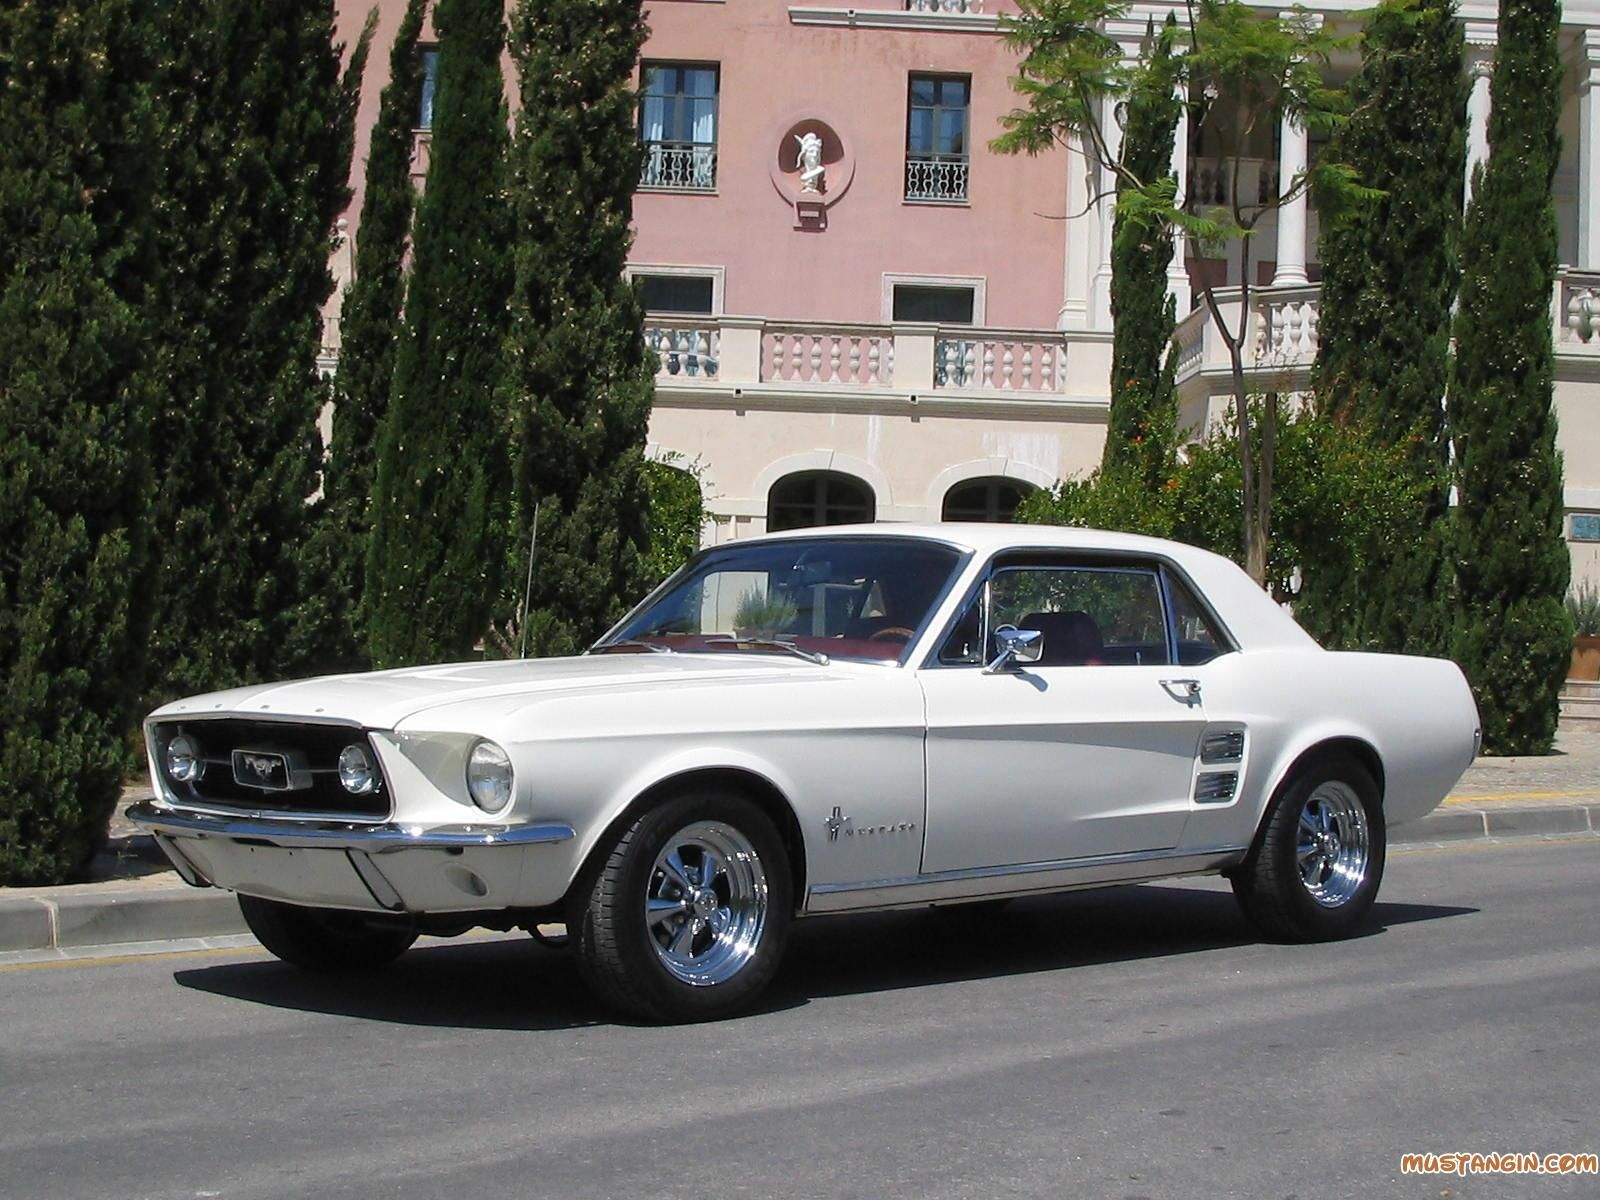 I used to have this car exactly white with red interior 1967 ford mustang still very distraught that daddy sold it